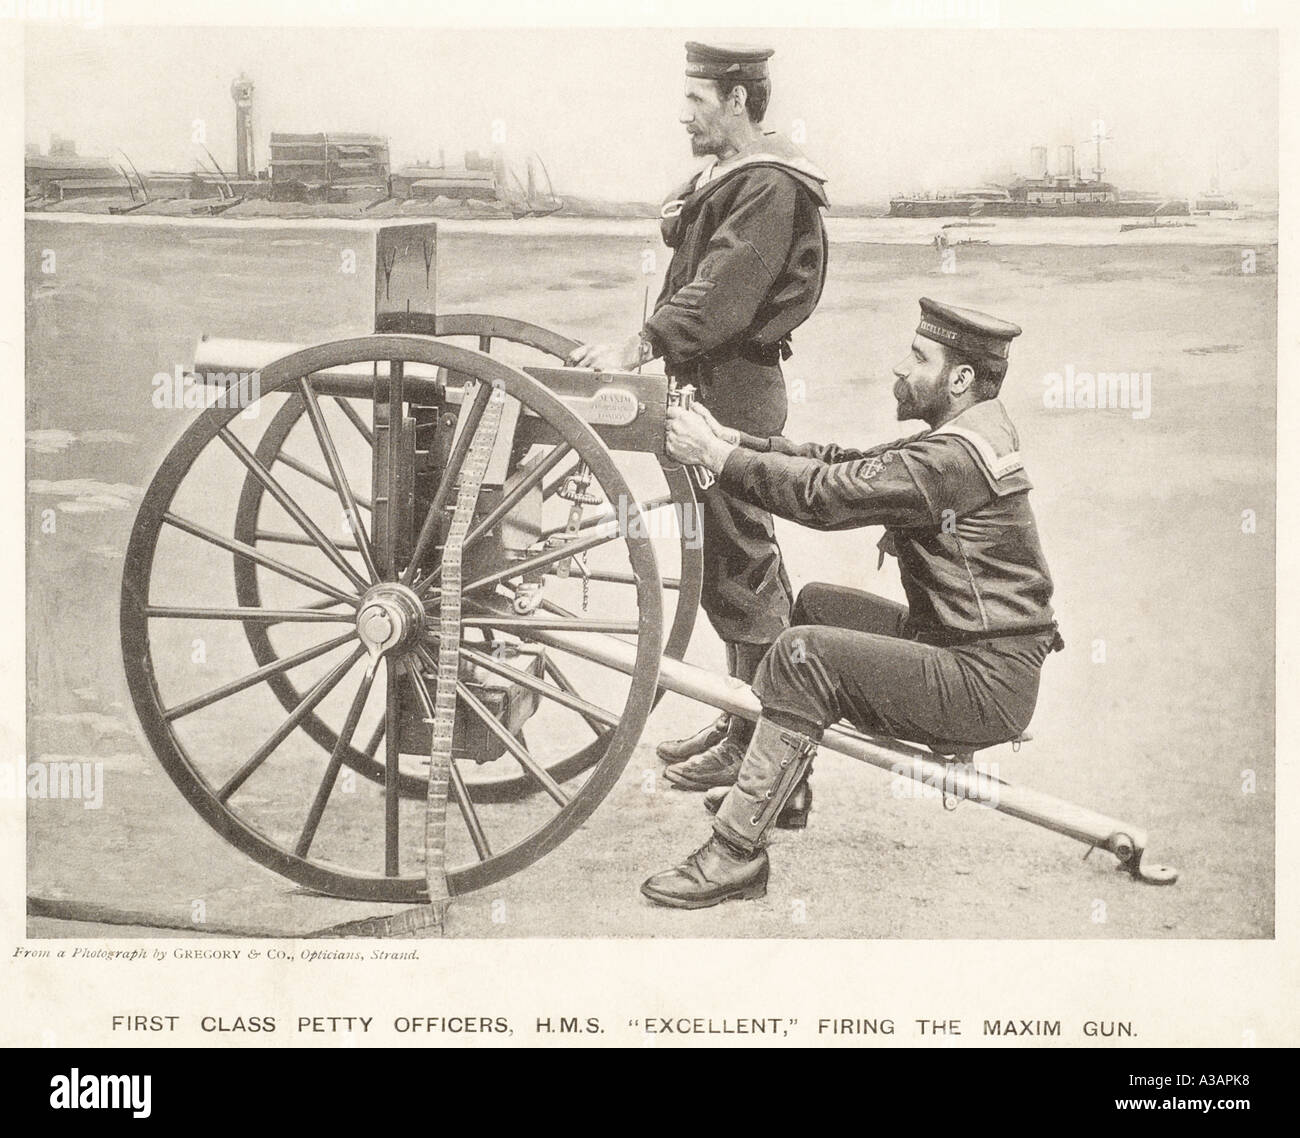 1st Class petty officer h m s Excellent firing heavy maxim machine gun navy naval history 1895 port harbour military weapon roya - Stock Image